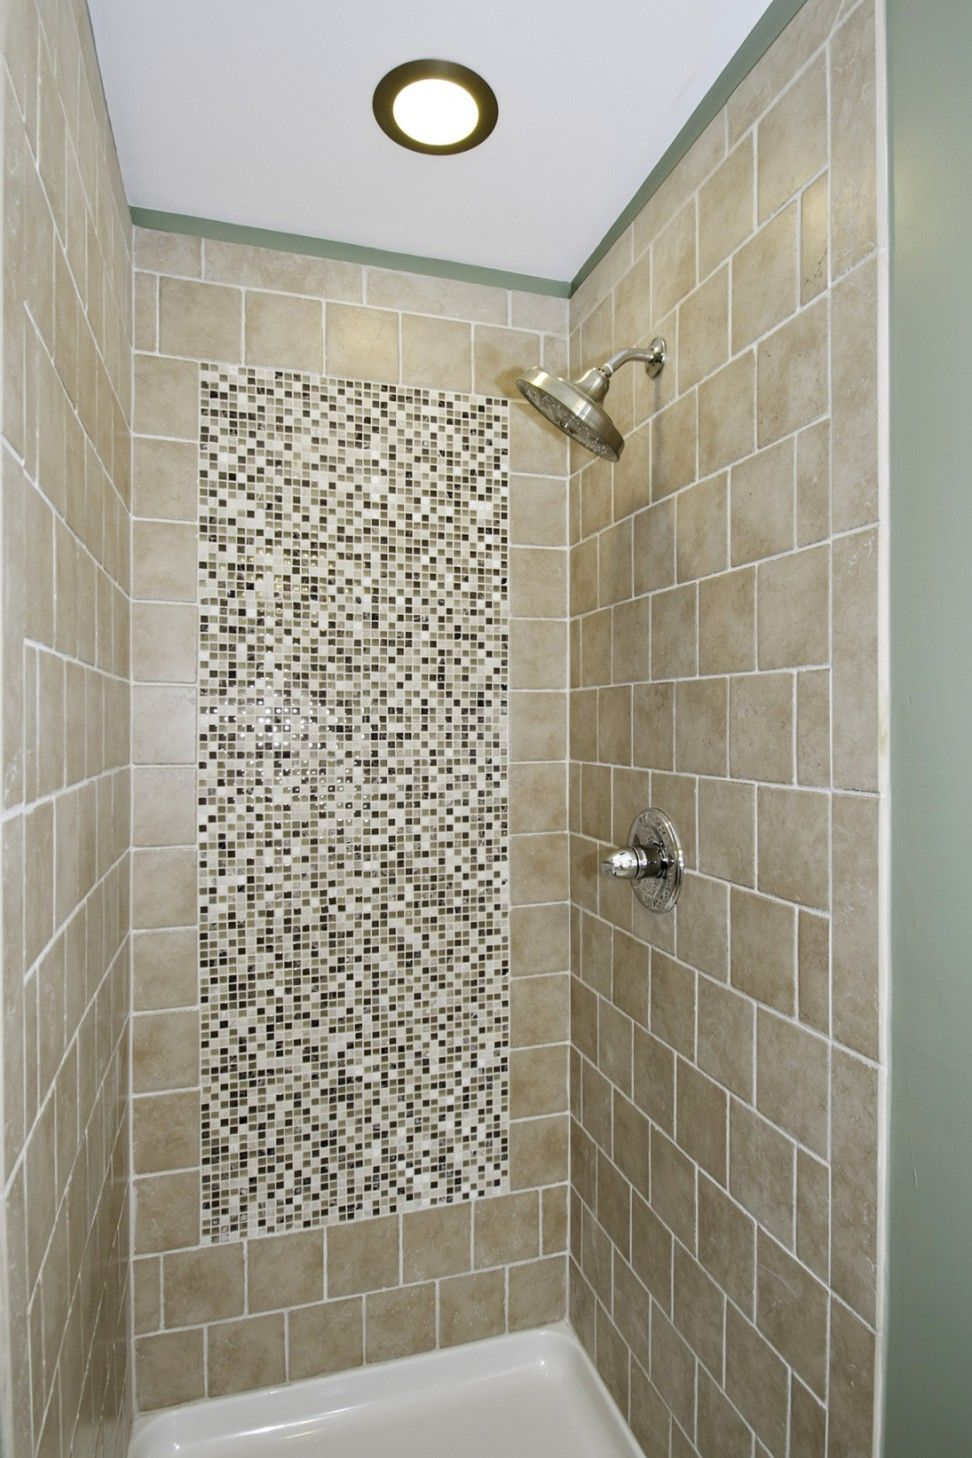 Image Result For Porcelain Tile With Mosaic Tile Inlay On Wall